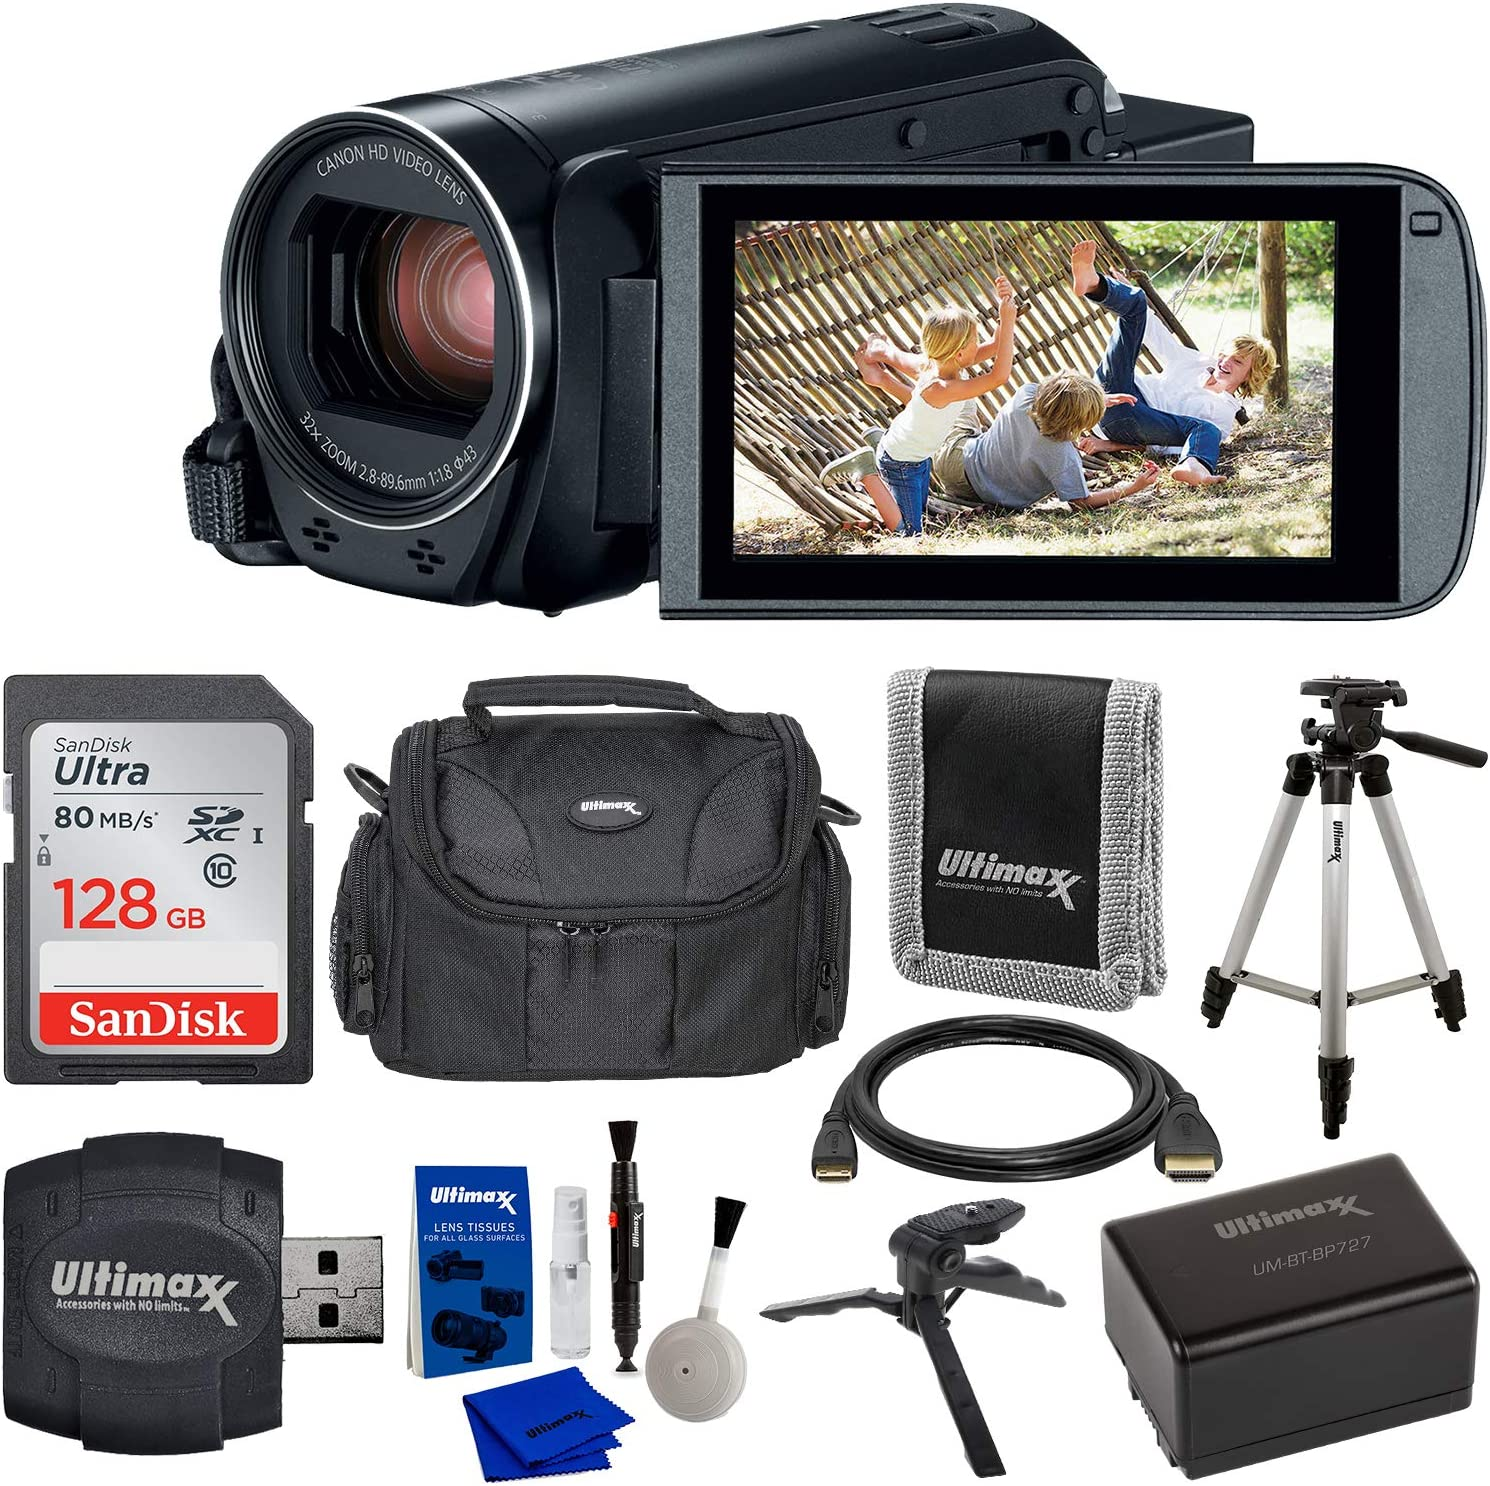 Canon VIXIA HF R800 Full HD Camcorder Bundle Spare Battery and More. Includes: 128GB SDXC Memory Card Card Reader